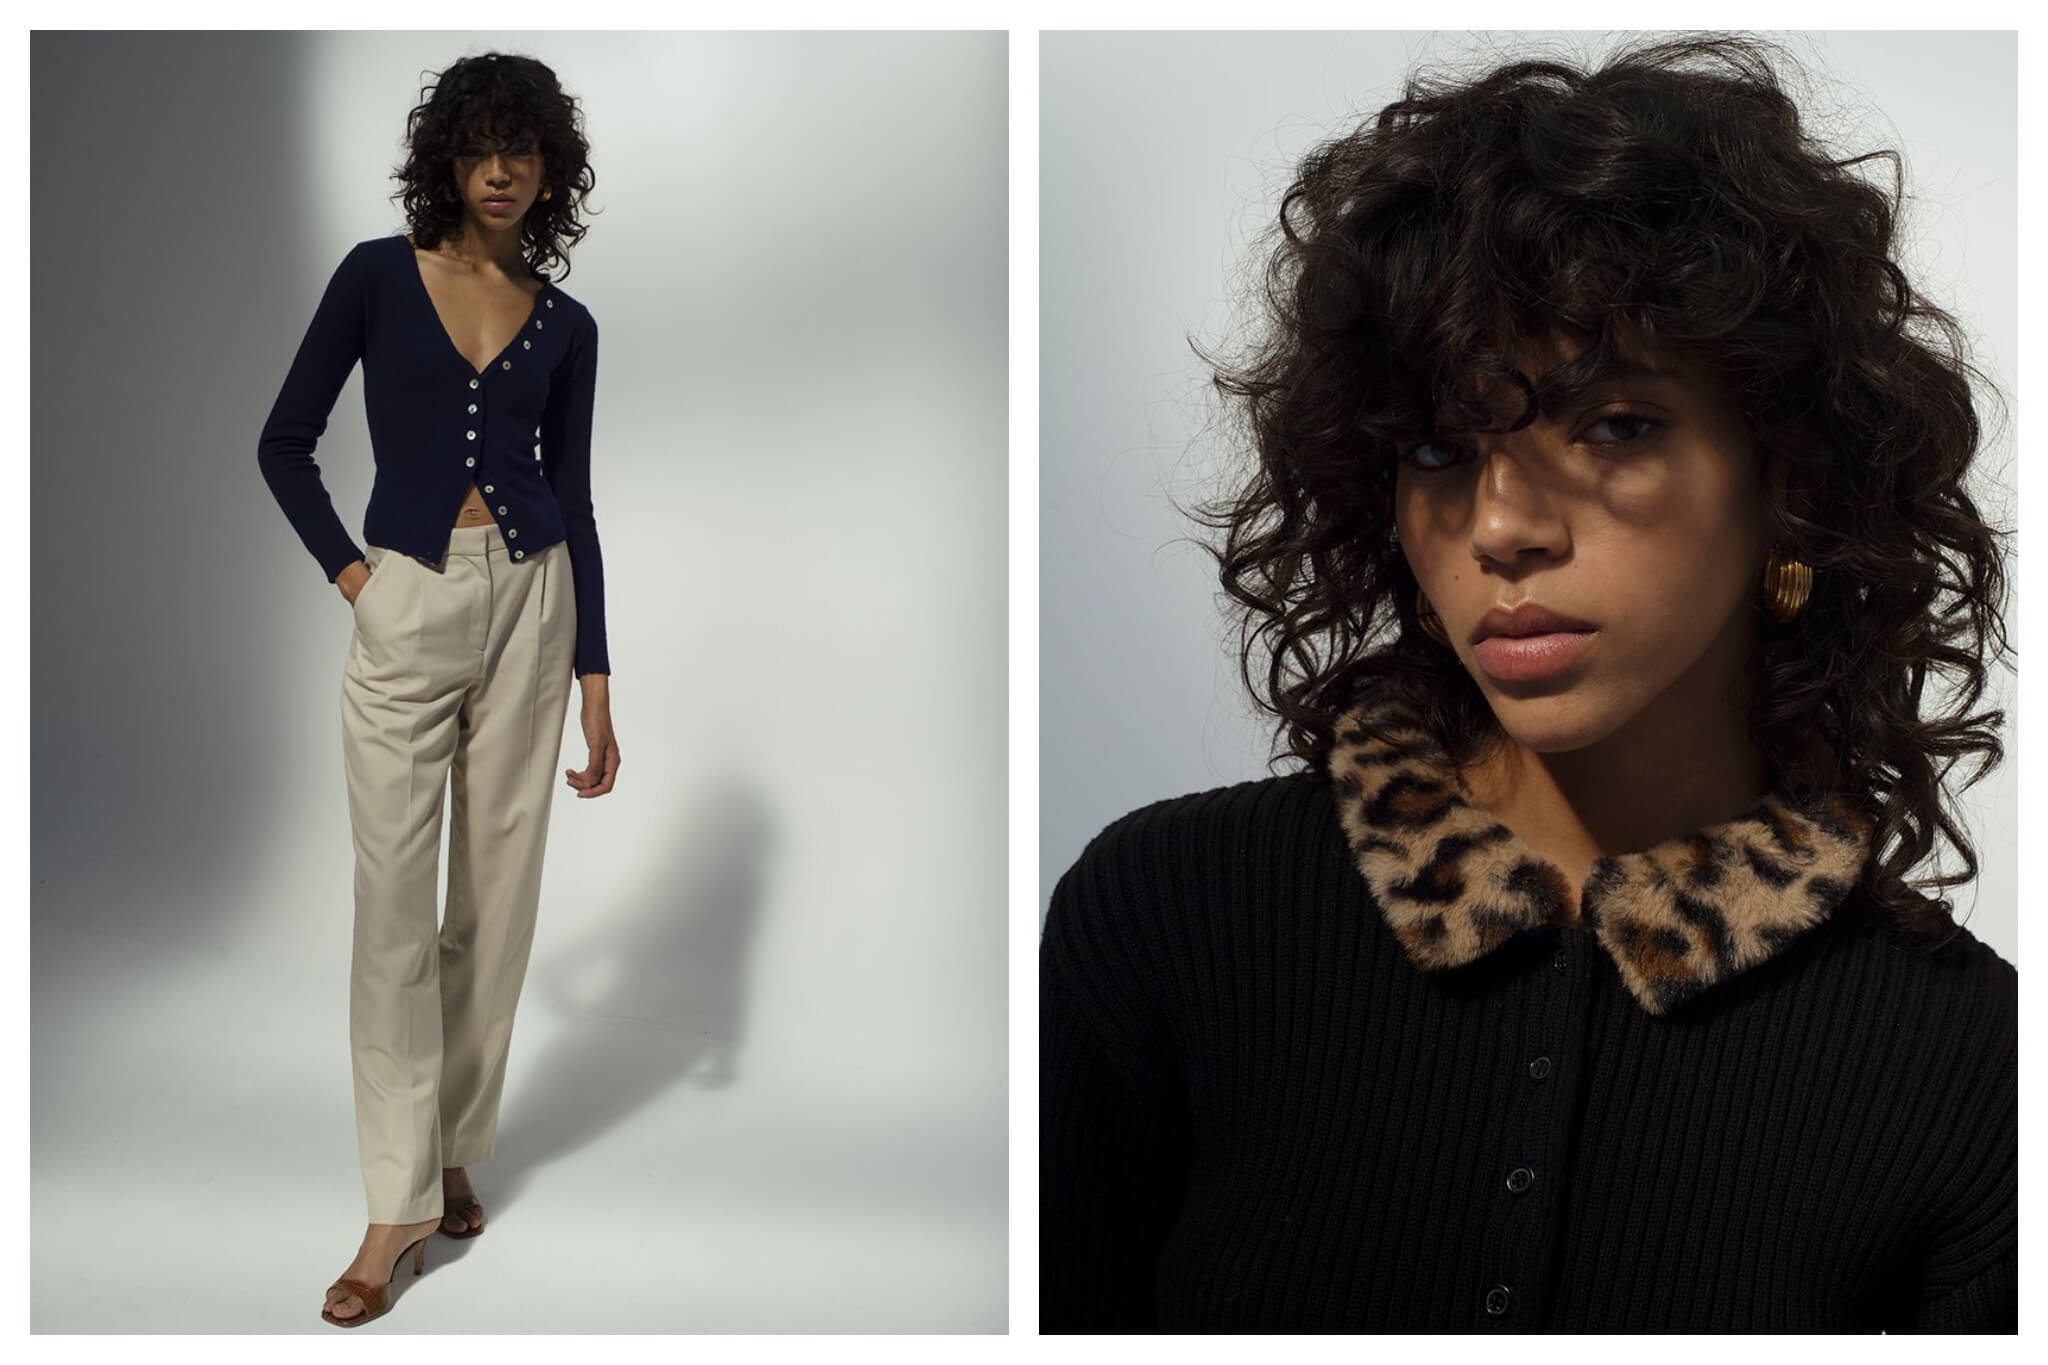 Left: a Model with curly black hair wears khaki trousers and a v neck dark sweater. Right: The same model has a black sweater on with an animal print collar, and is photographed closed up.